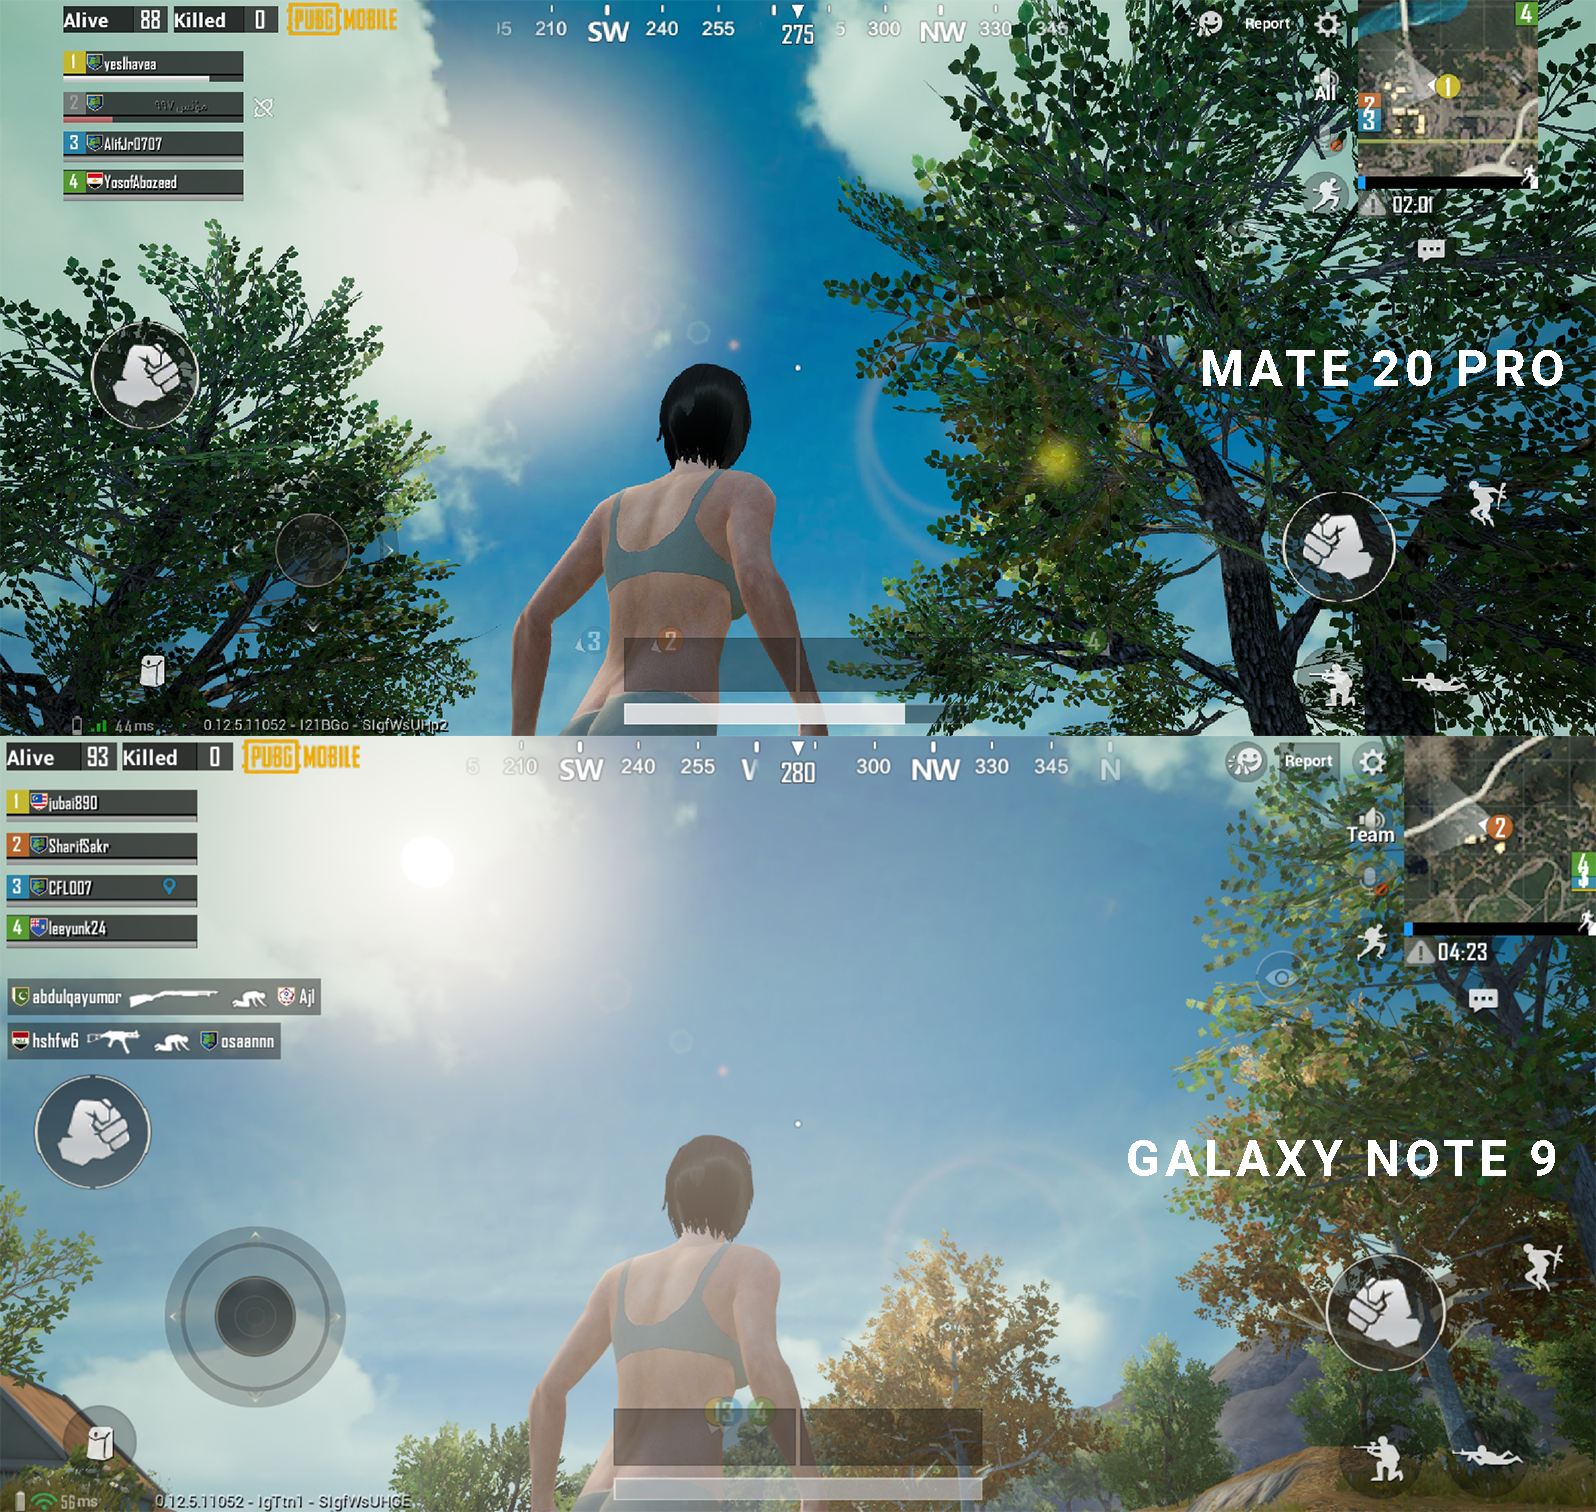 Mate 20 Pro vs Note 9 HDR PUBG comparison